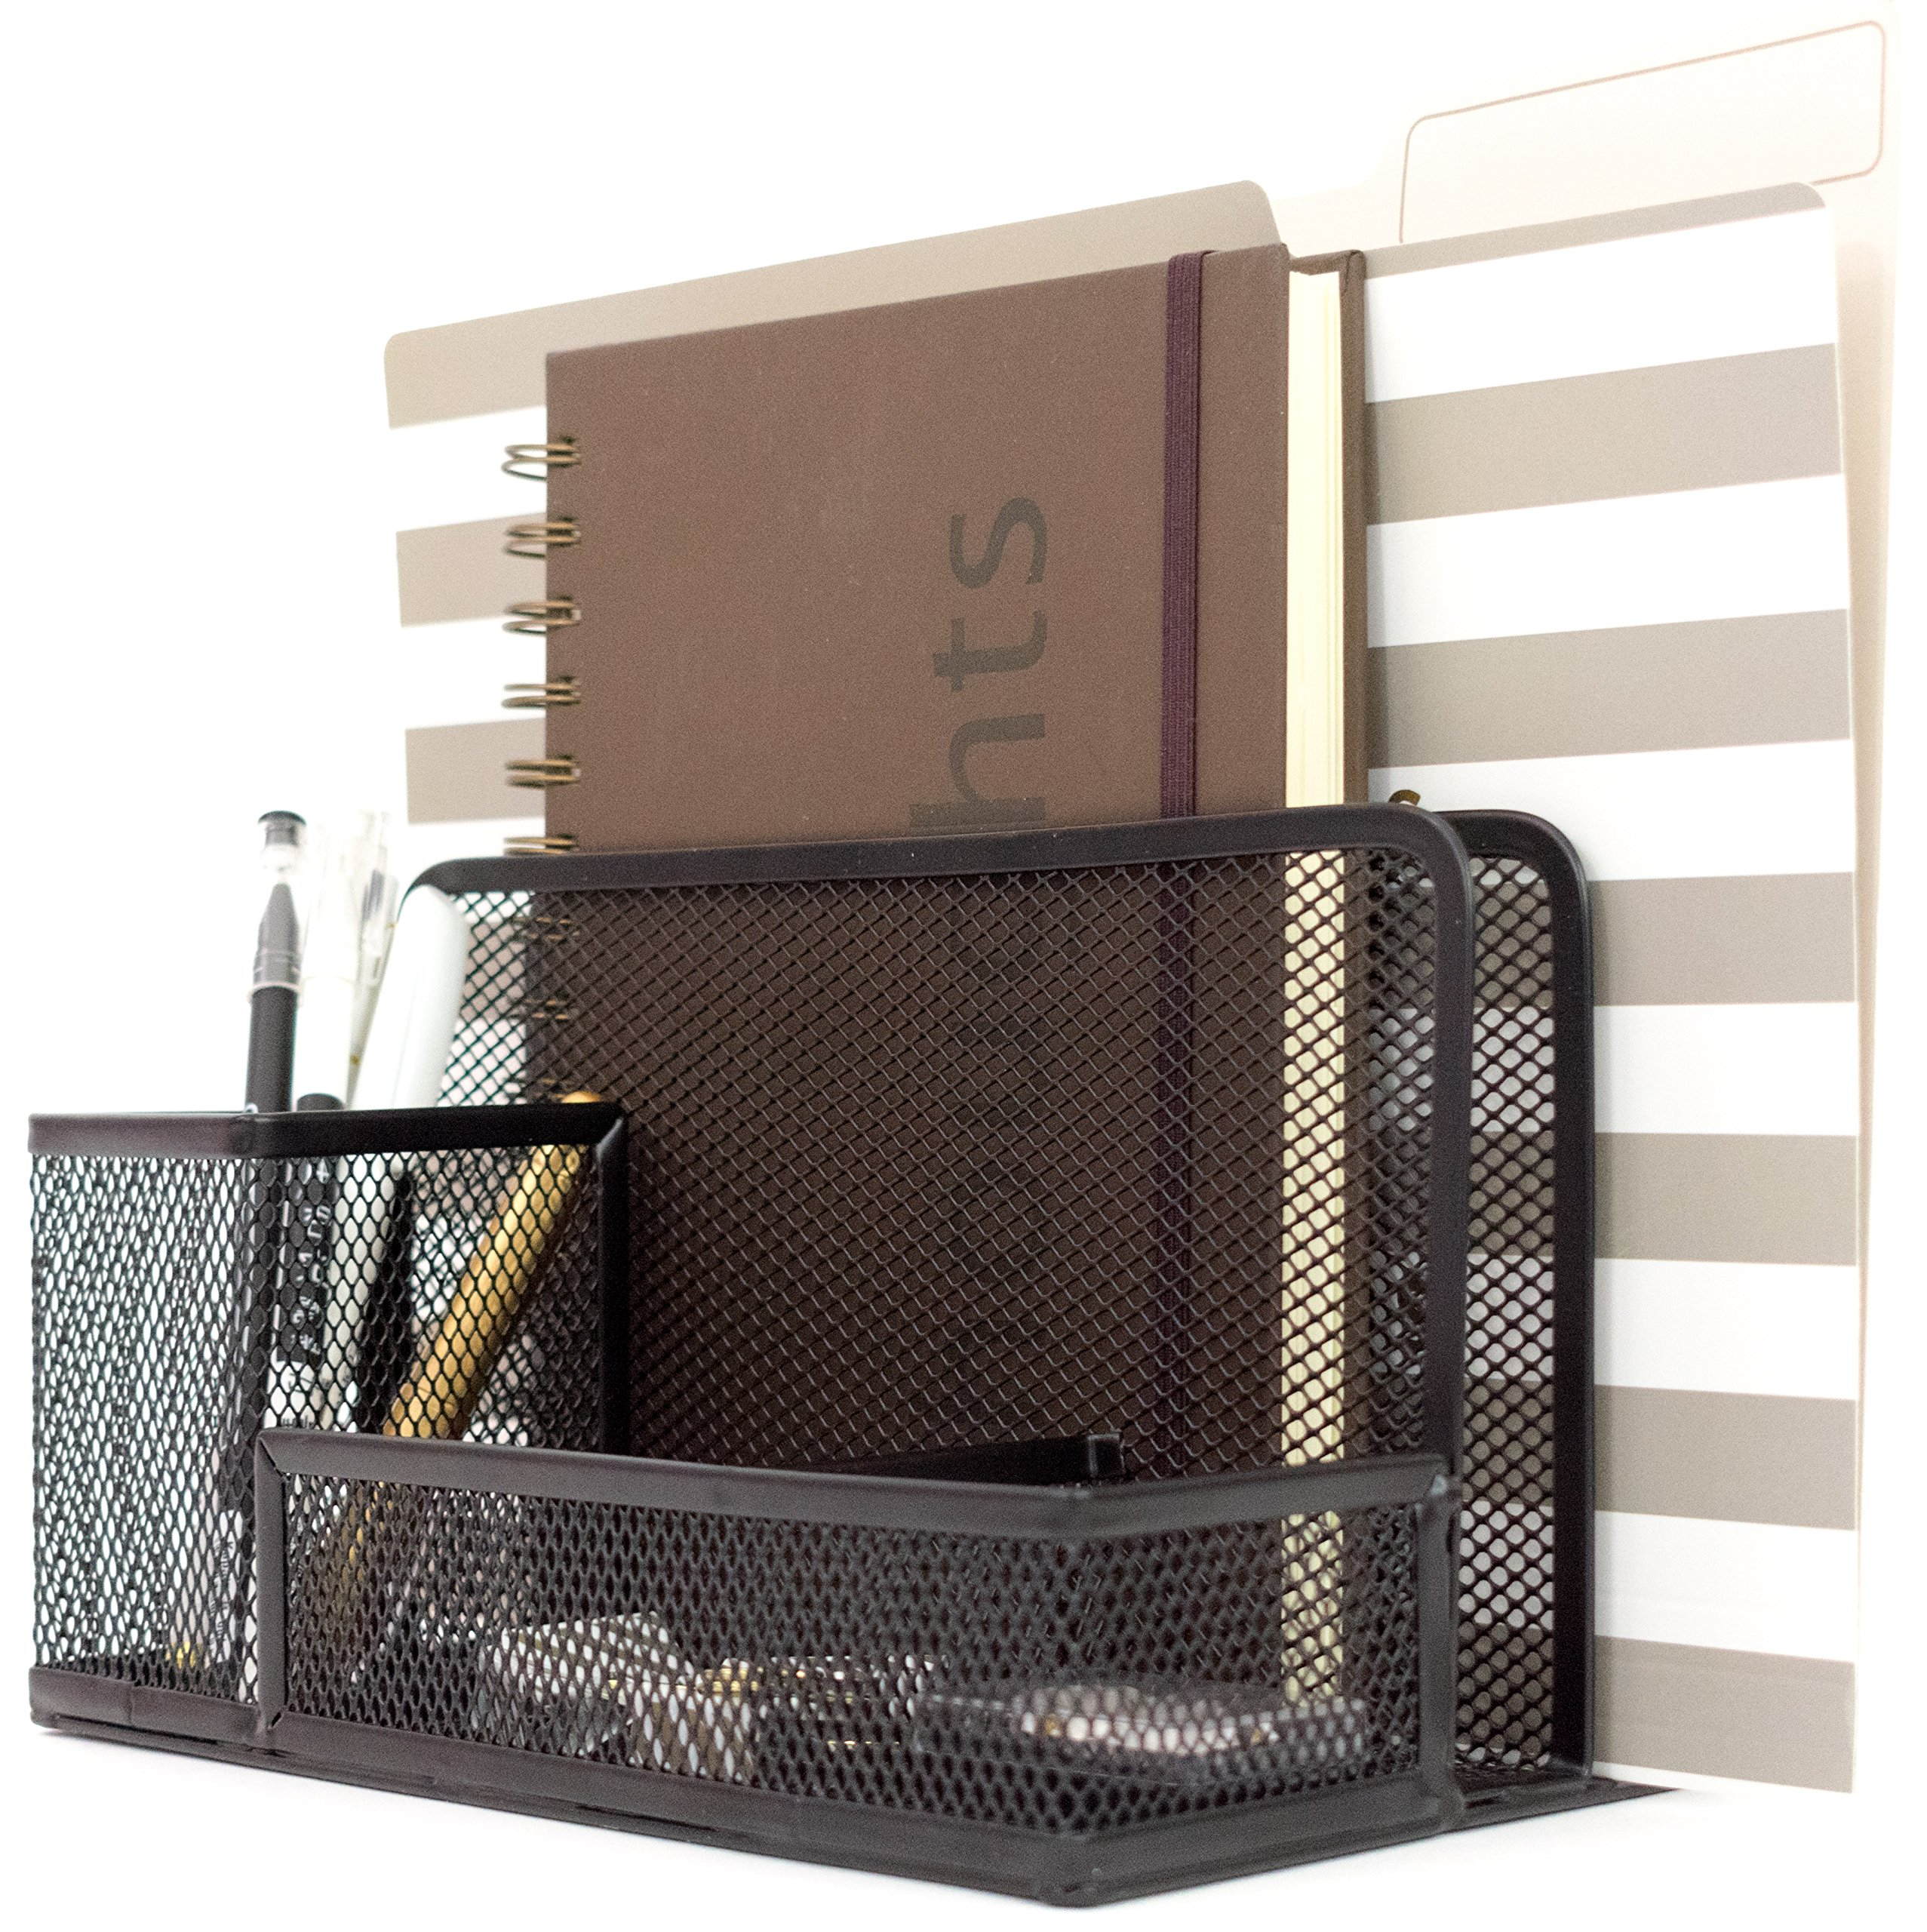 Blu Monaco Office Supplies Desk Organizers and Accessories - Medium Black Wire Mesh 2 Tier Vertical File Holder with Pen Cup and Accessory Tray Compartments